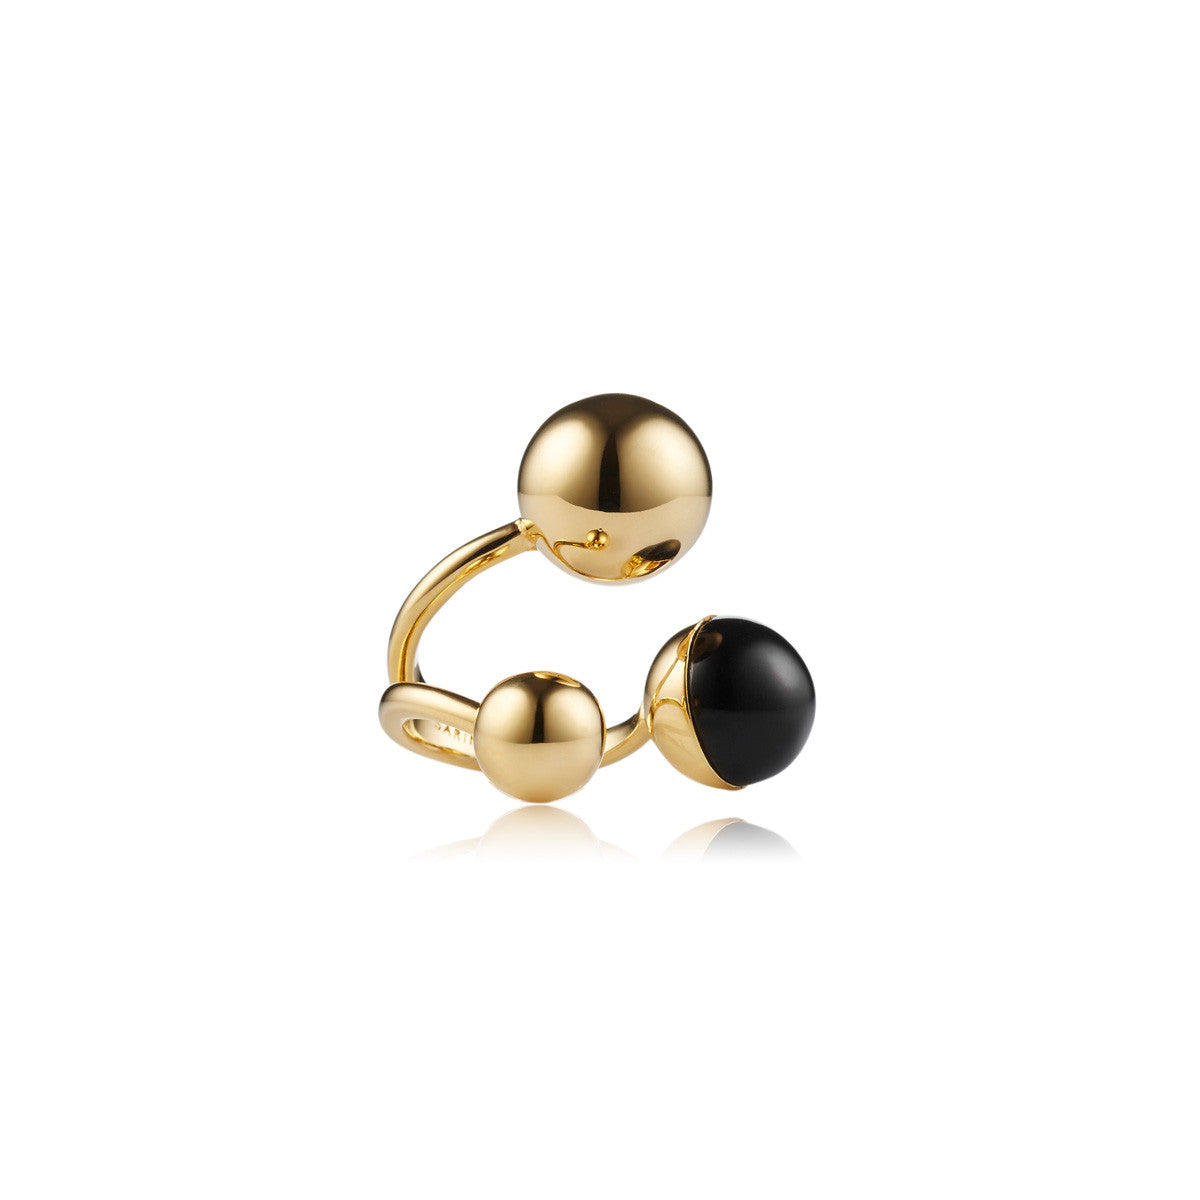 Solid brass, 18K gold plated Celestine ring topped with black onyx - front